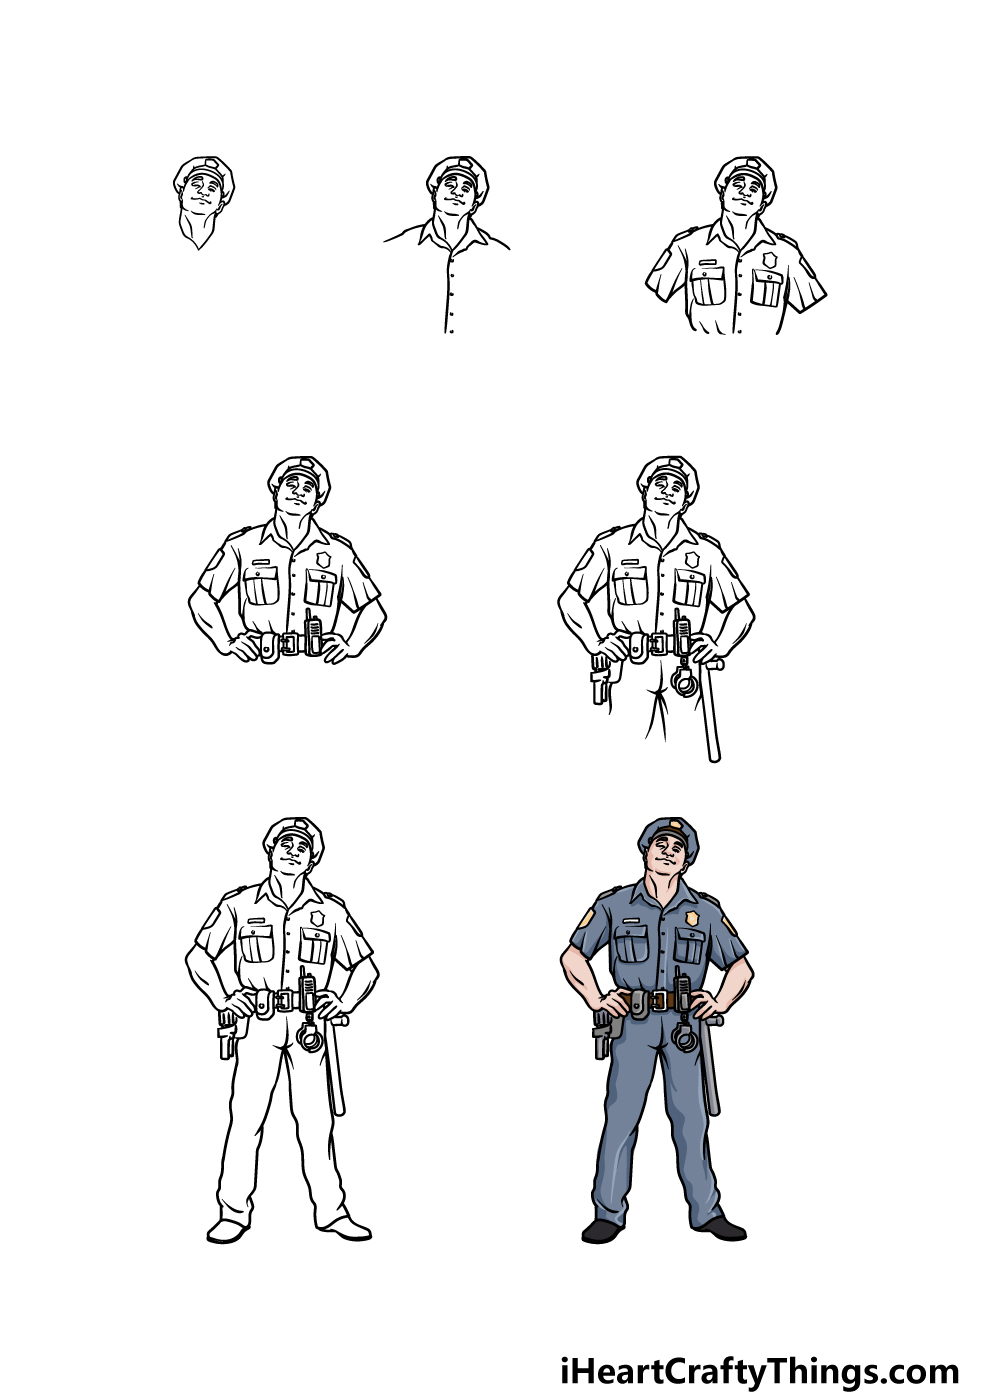 how to draw a police officer in 7 steps